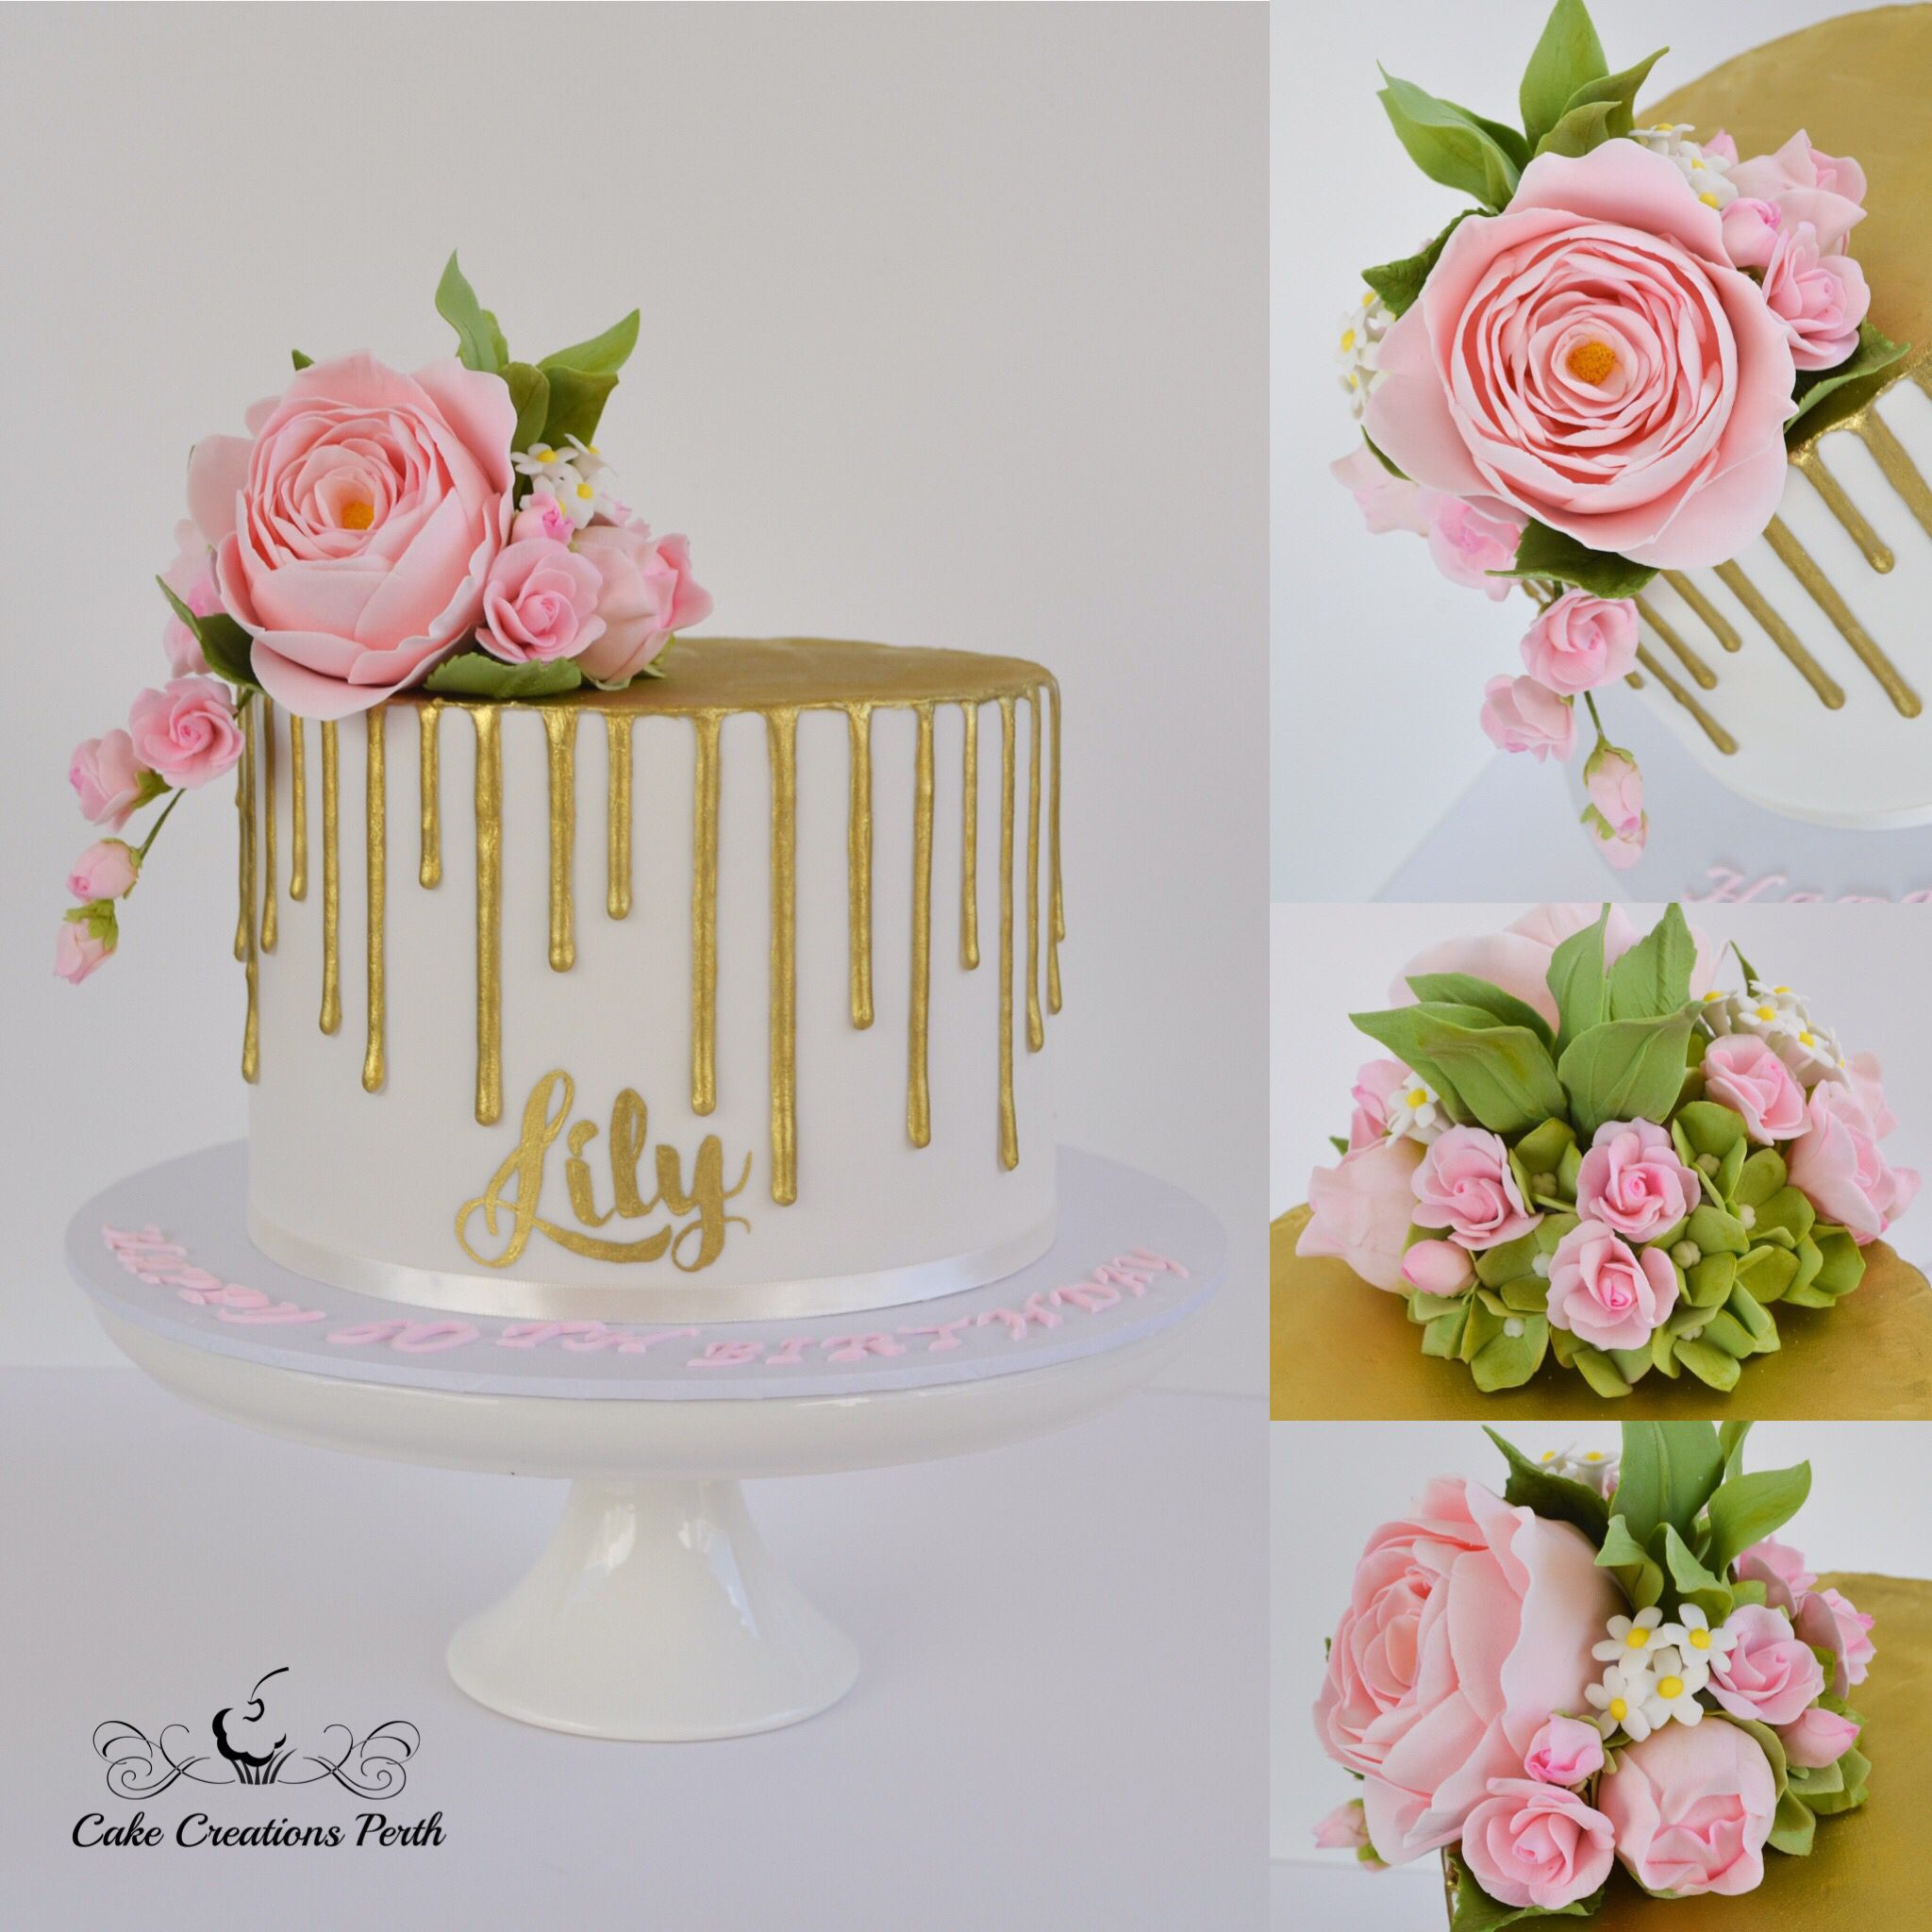 60th Birthday Cake Handmade Sugar Flowers Topped This Gold Drip